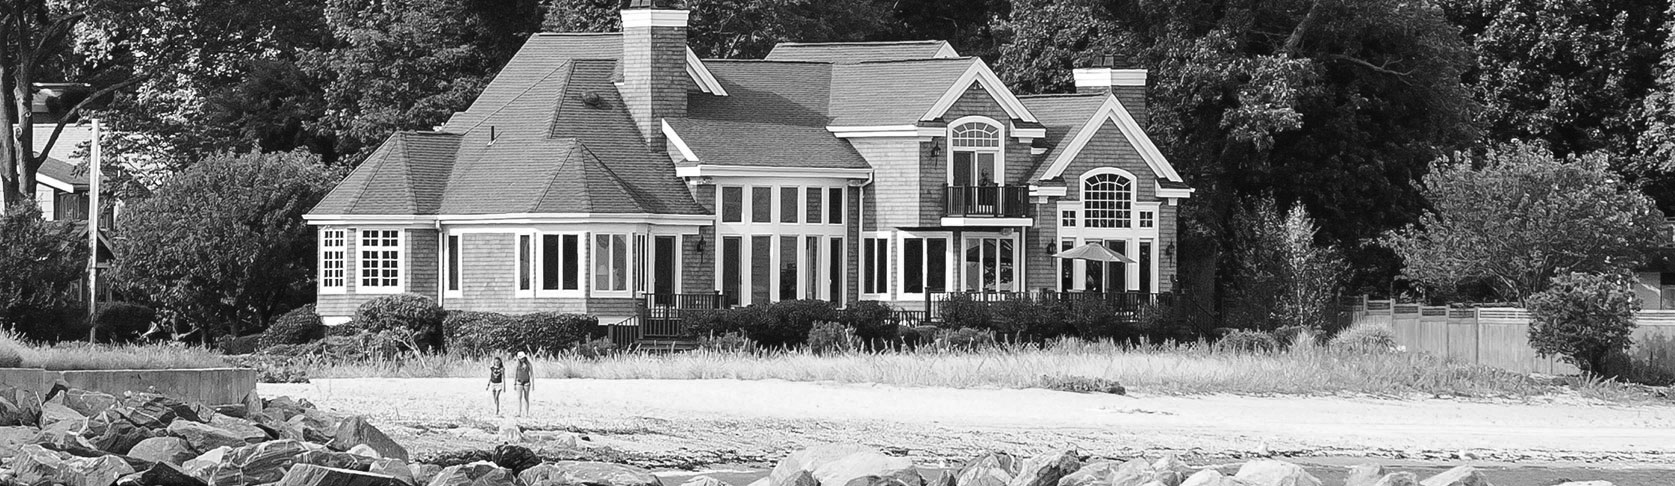 233 Byram Shore Road, Greenwich, CT